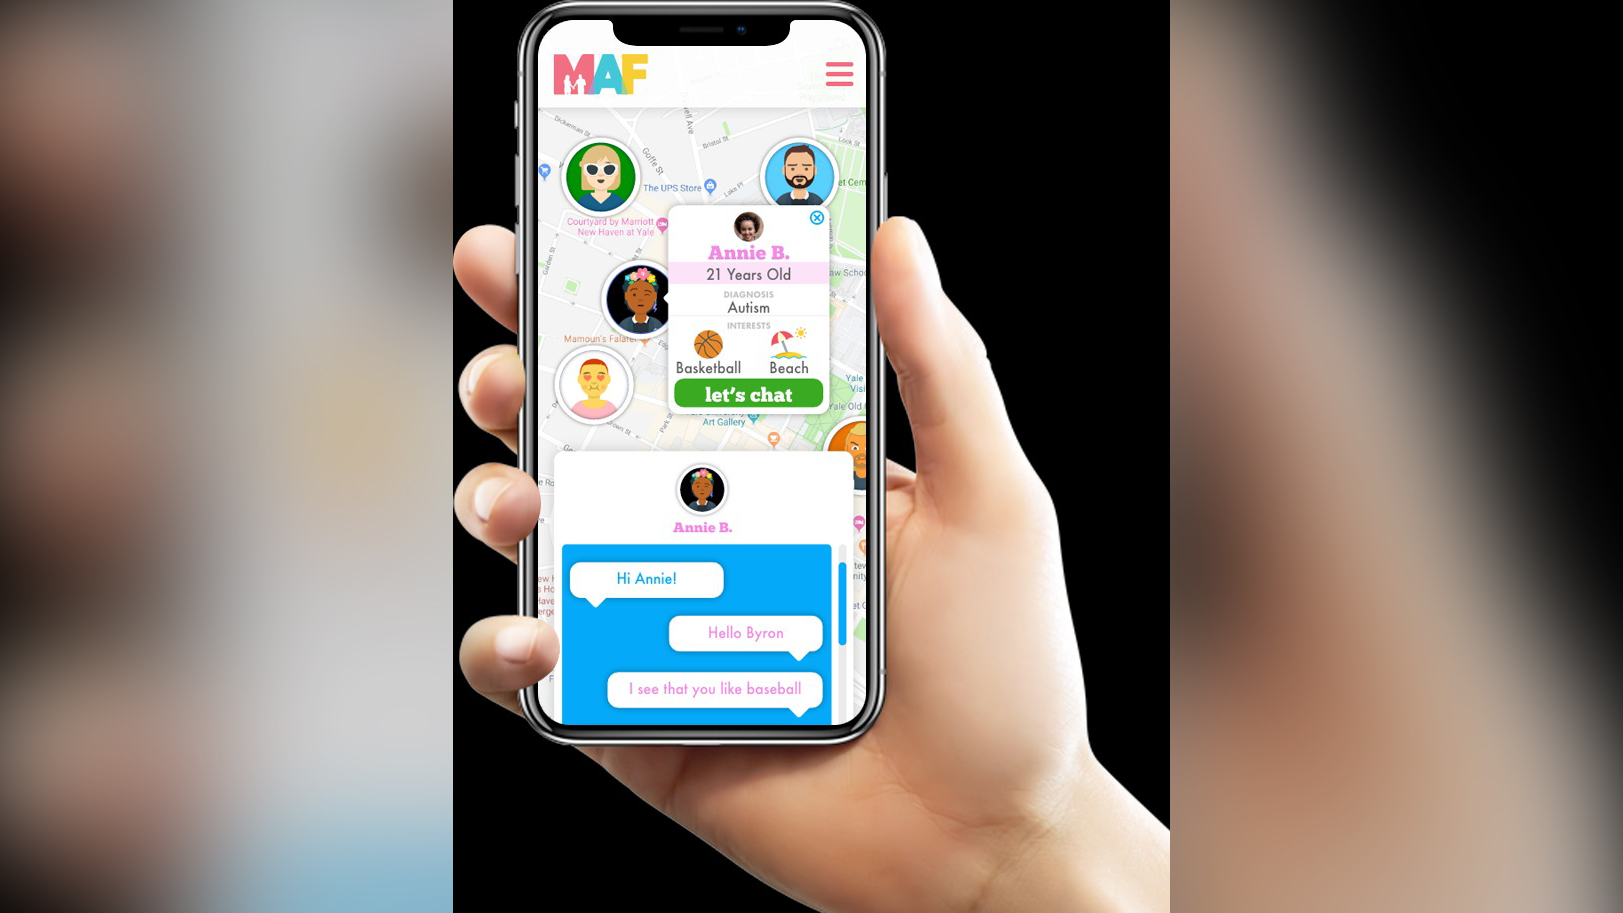 Making Authentic Friendships web app